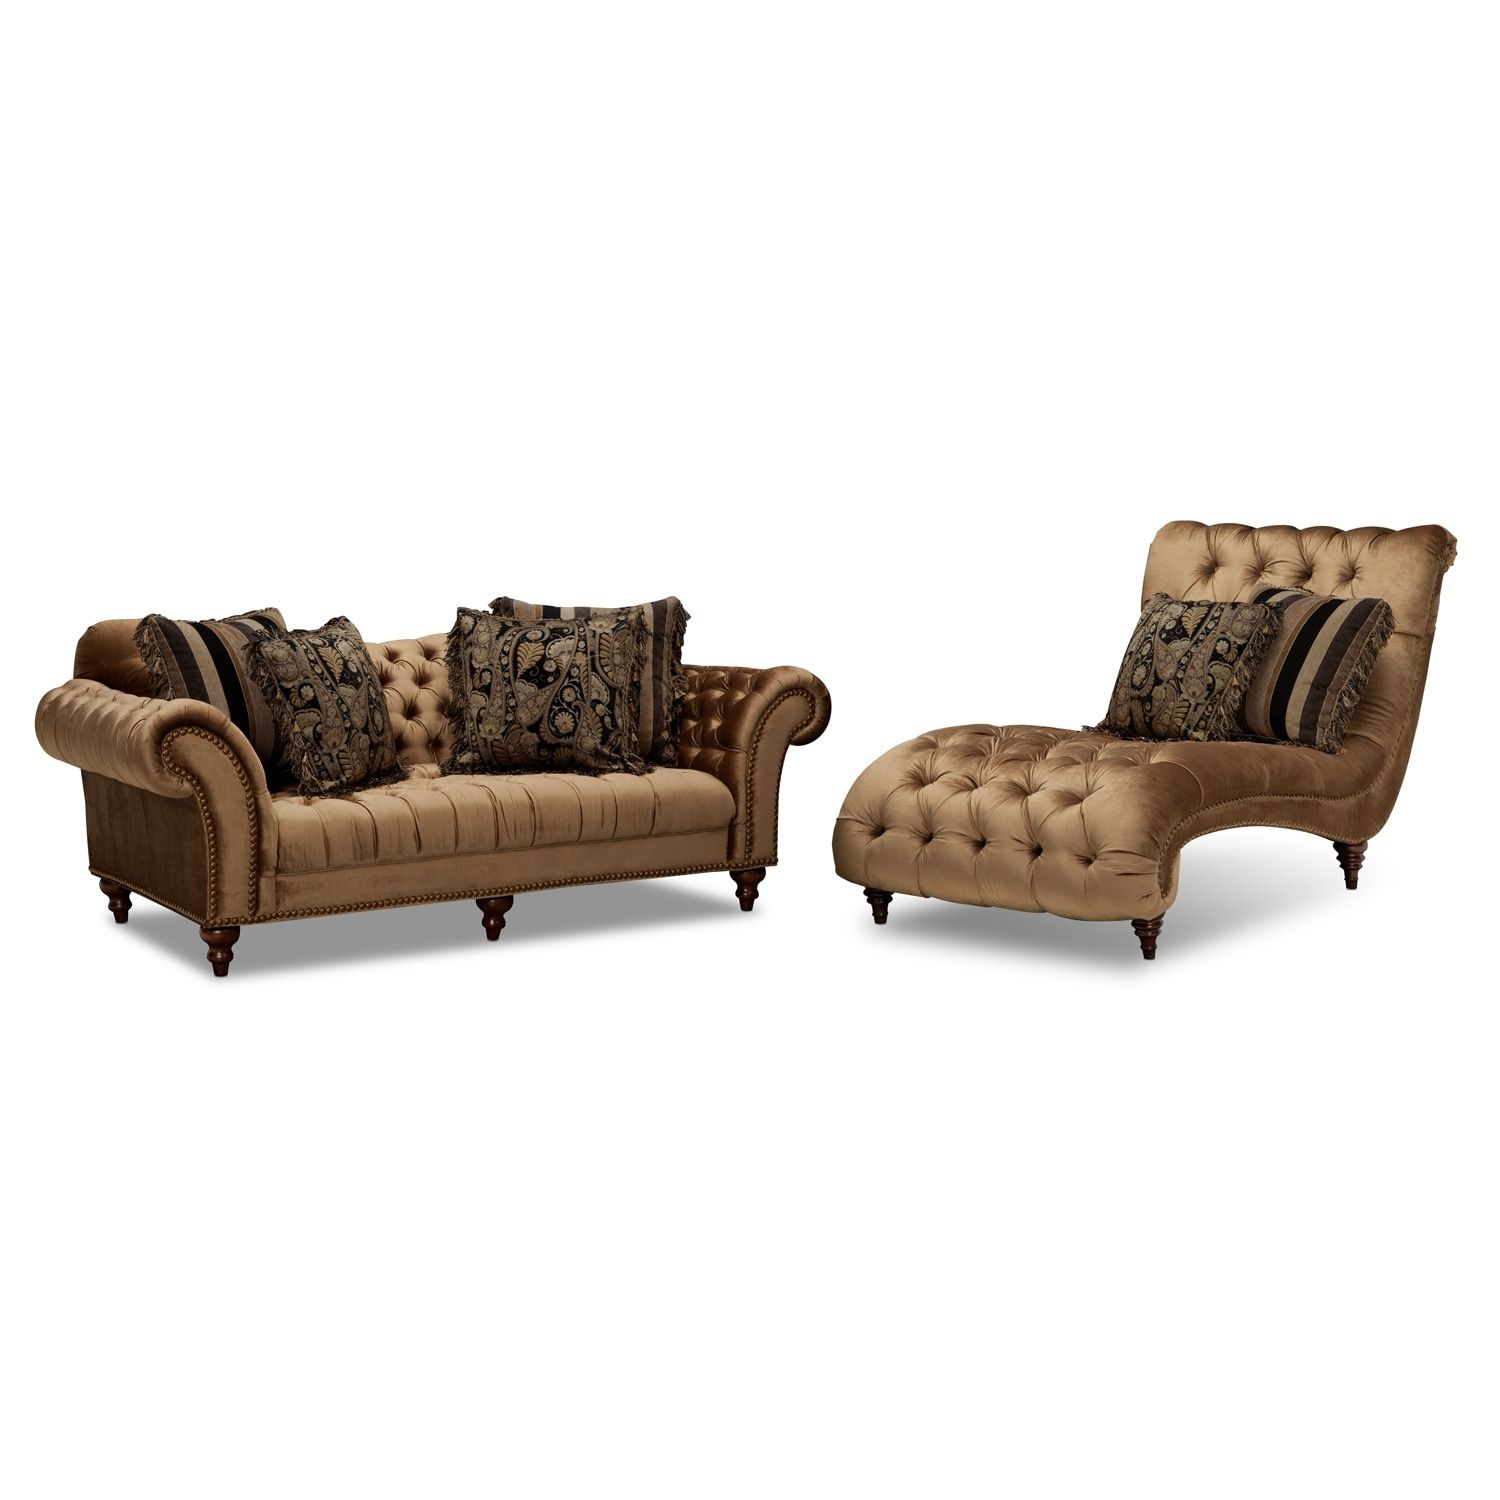 Best Brittney Sofa And Chaise Set In 2019 Furniture Value 640 x 480